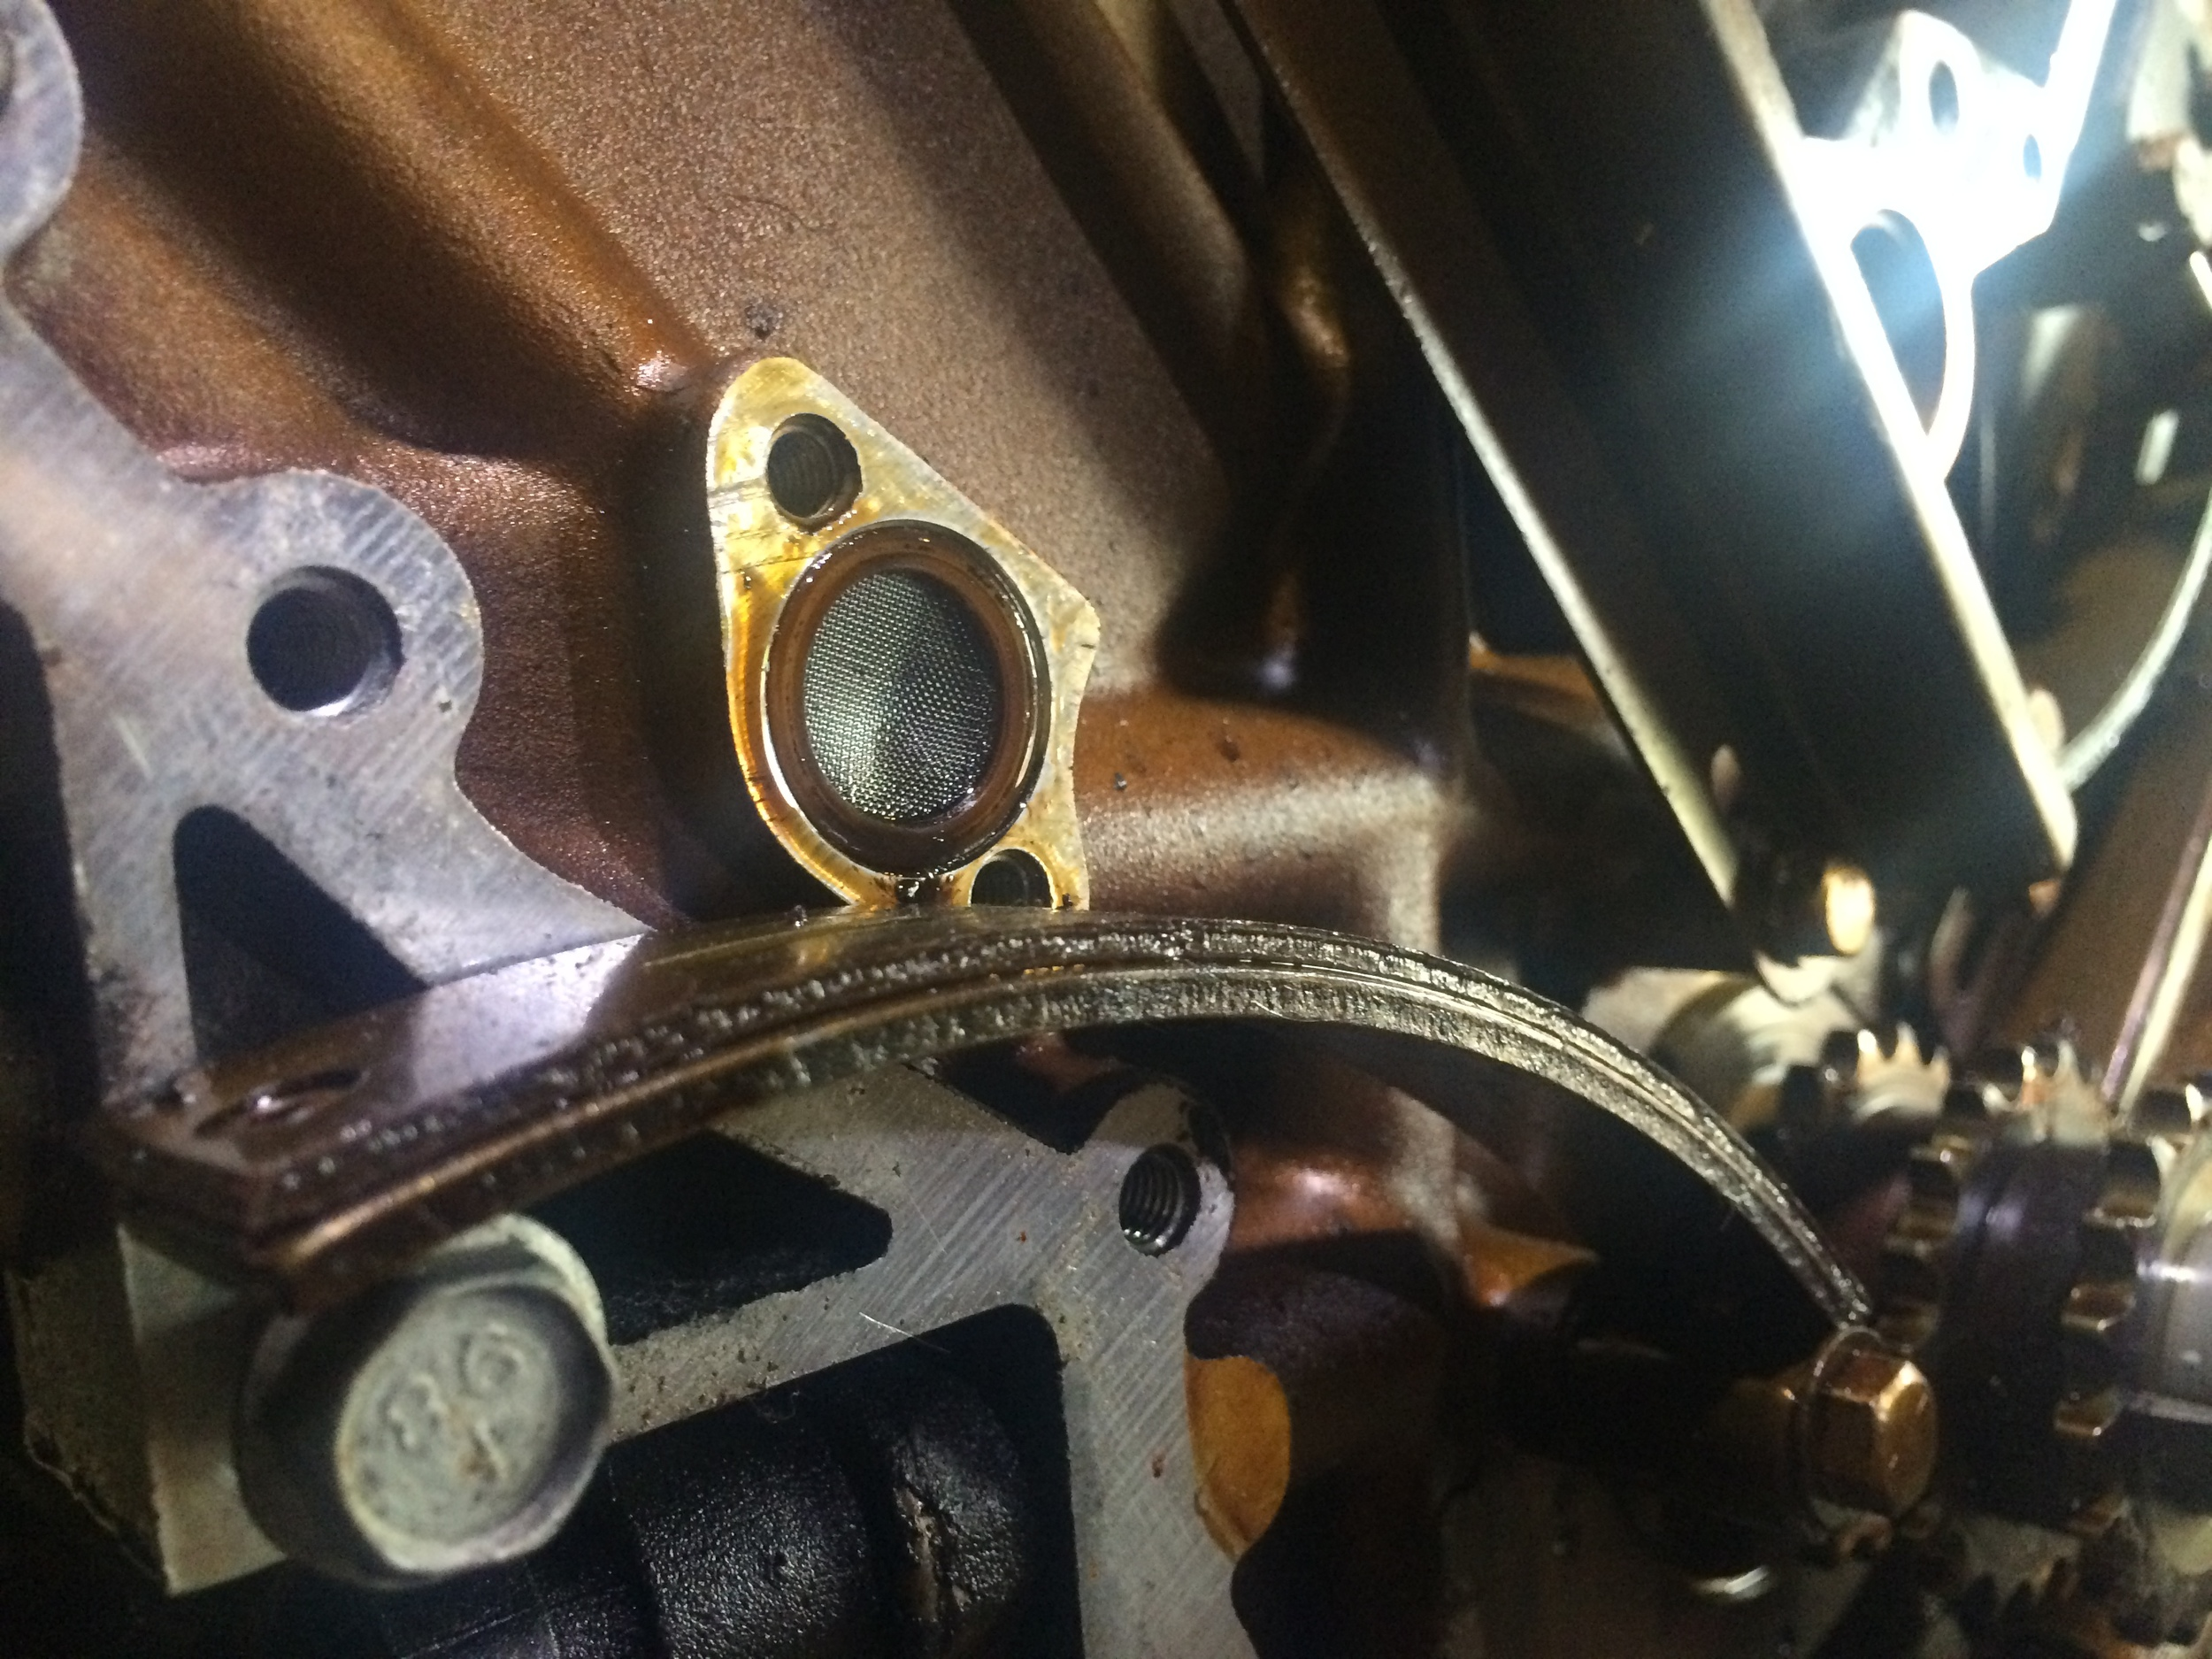 The filter screen behind the tensioner is easily removed with a fingernail and cleaned with a shop cloth.